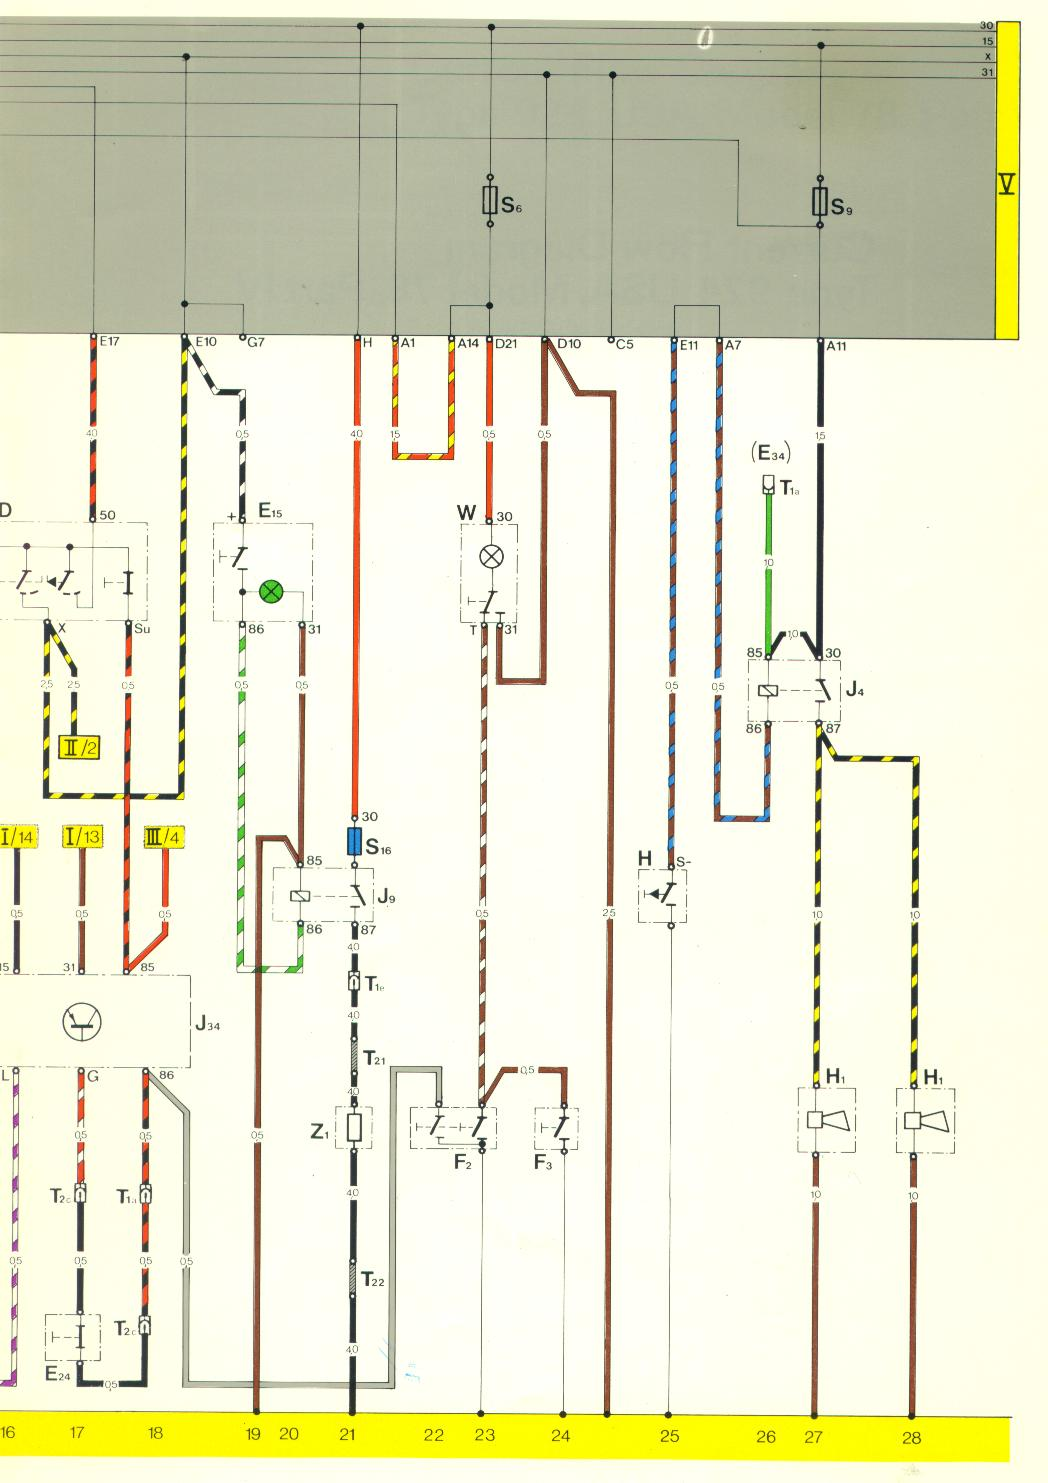 924_78_4_2 porsche wiring diagram wiring diagram and schematic design porsche 356 wiring diagram at crackthecode.co